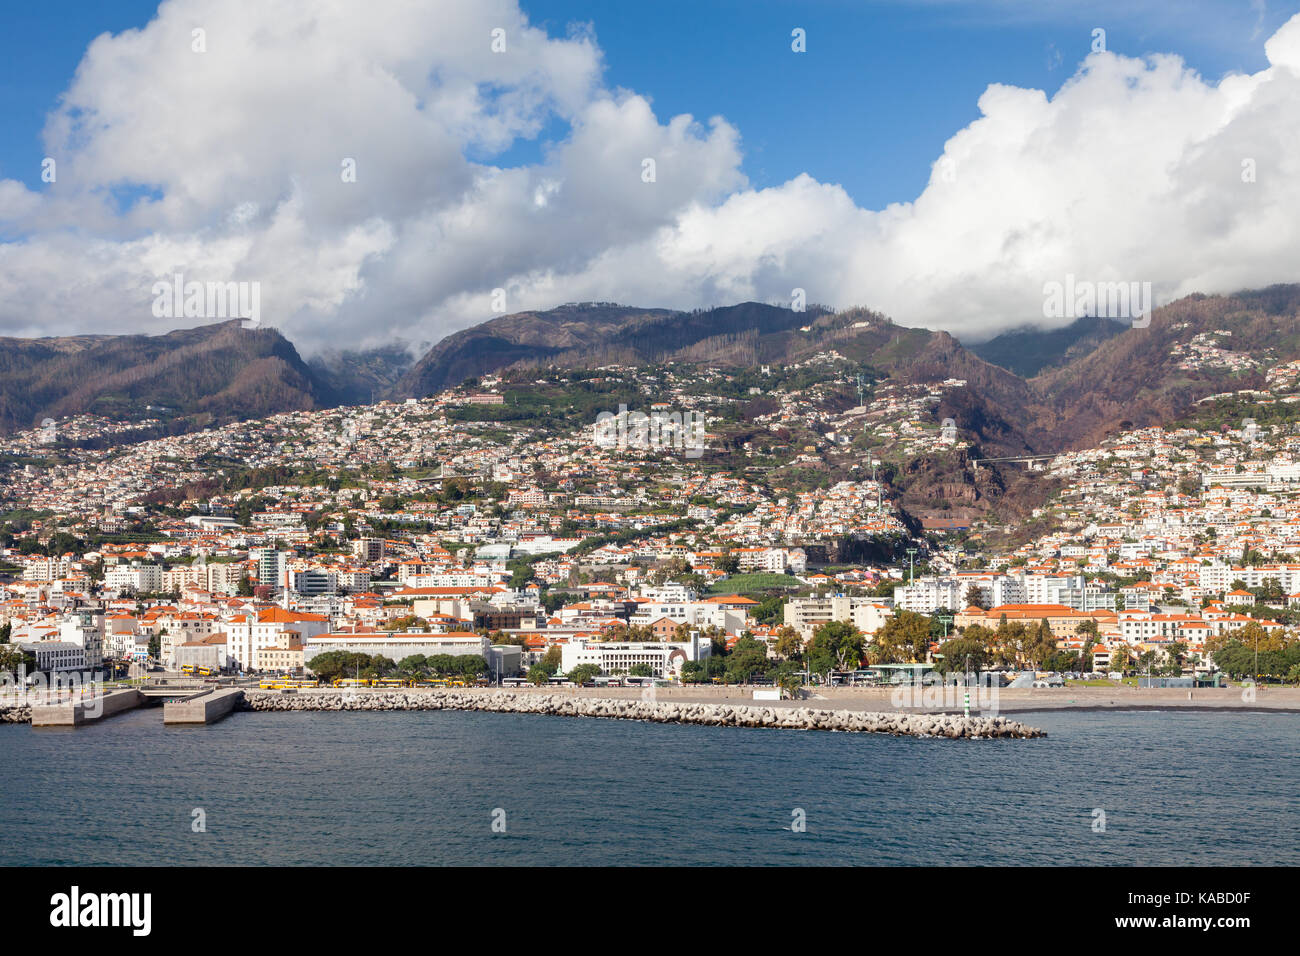 The waterfront of Funchal on the Portuguese island of Madeira. - Stock Image